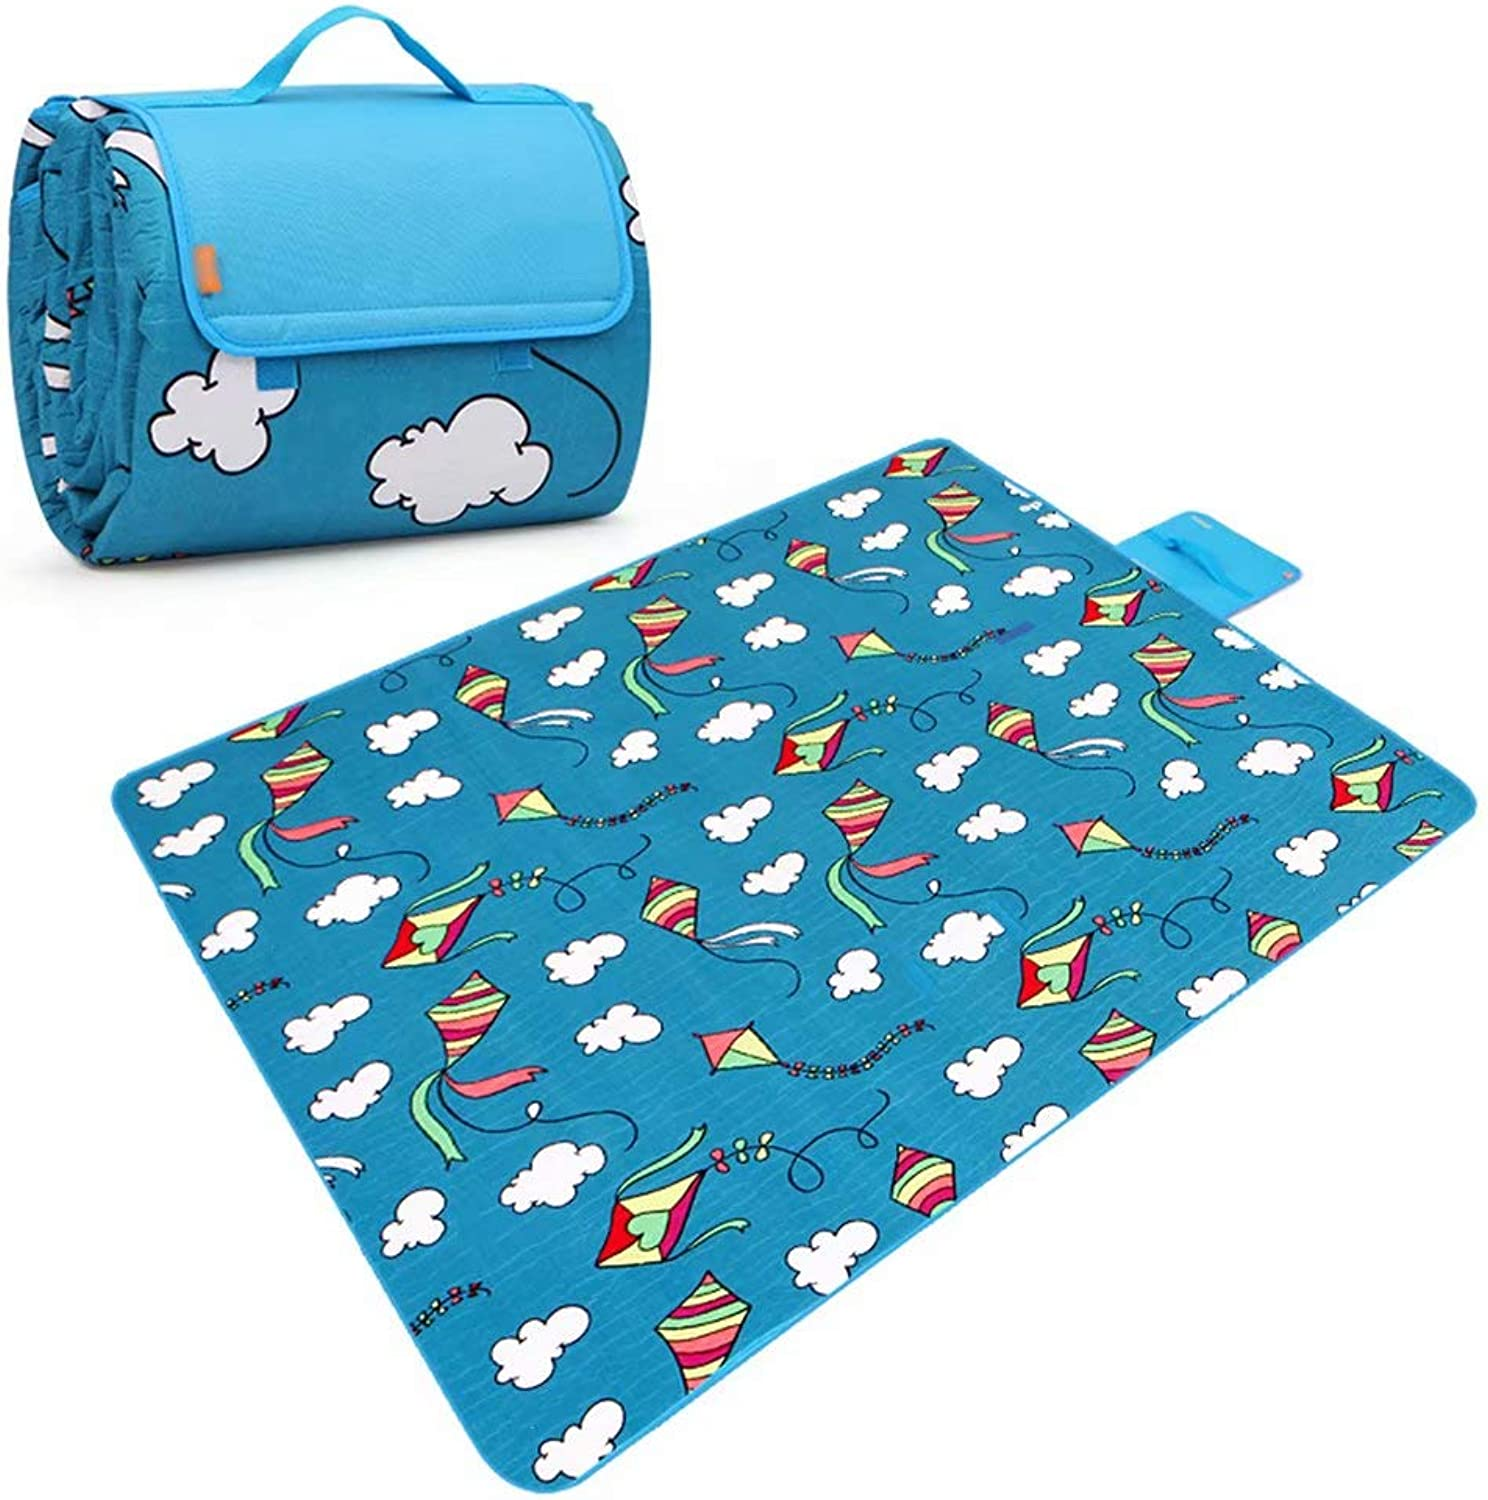 Picnic Blanket Waterproof Backing Outdoor Beach Picnic Rug Mat with Handle